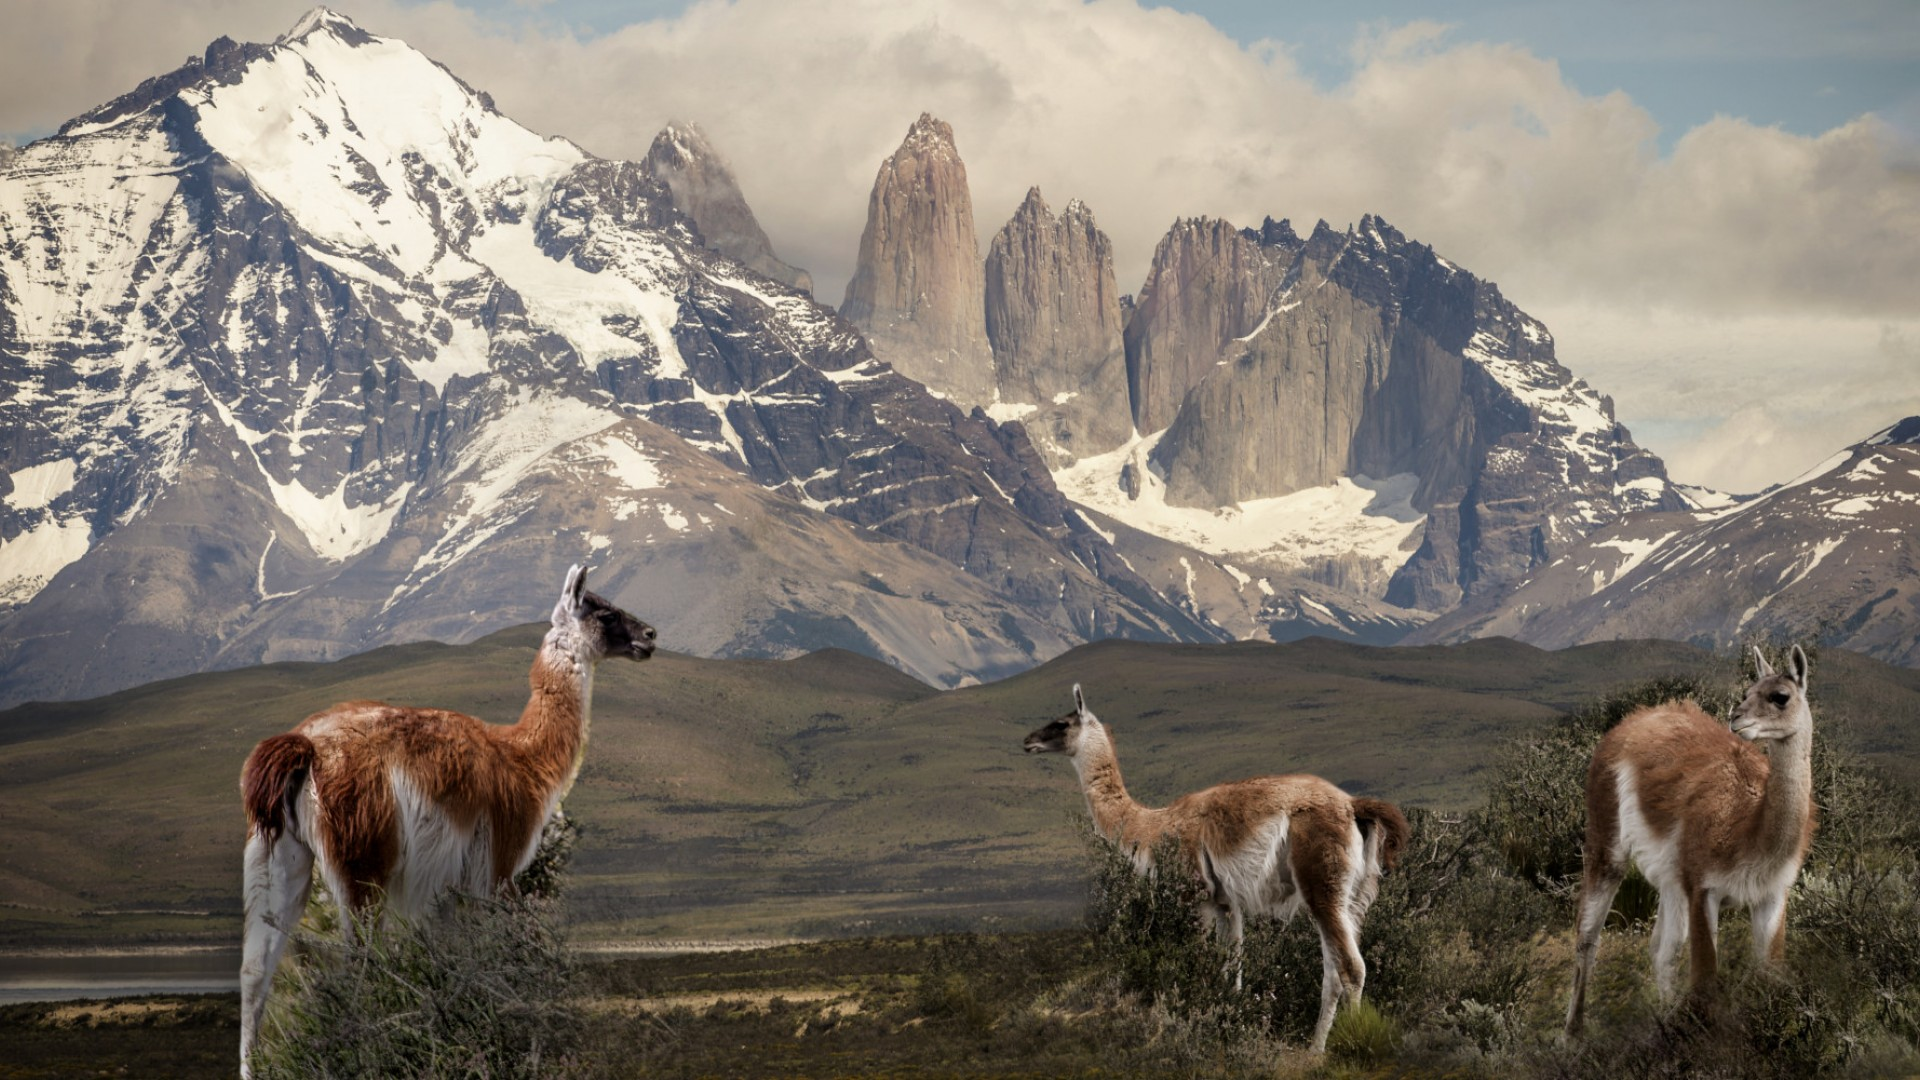 Guanaco in front of mountains in patagonia